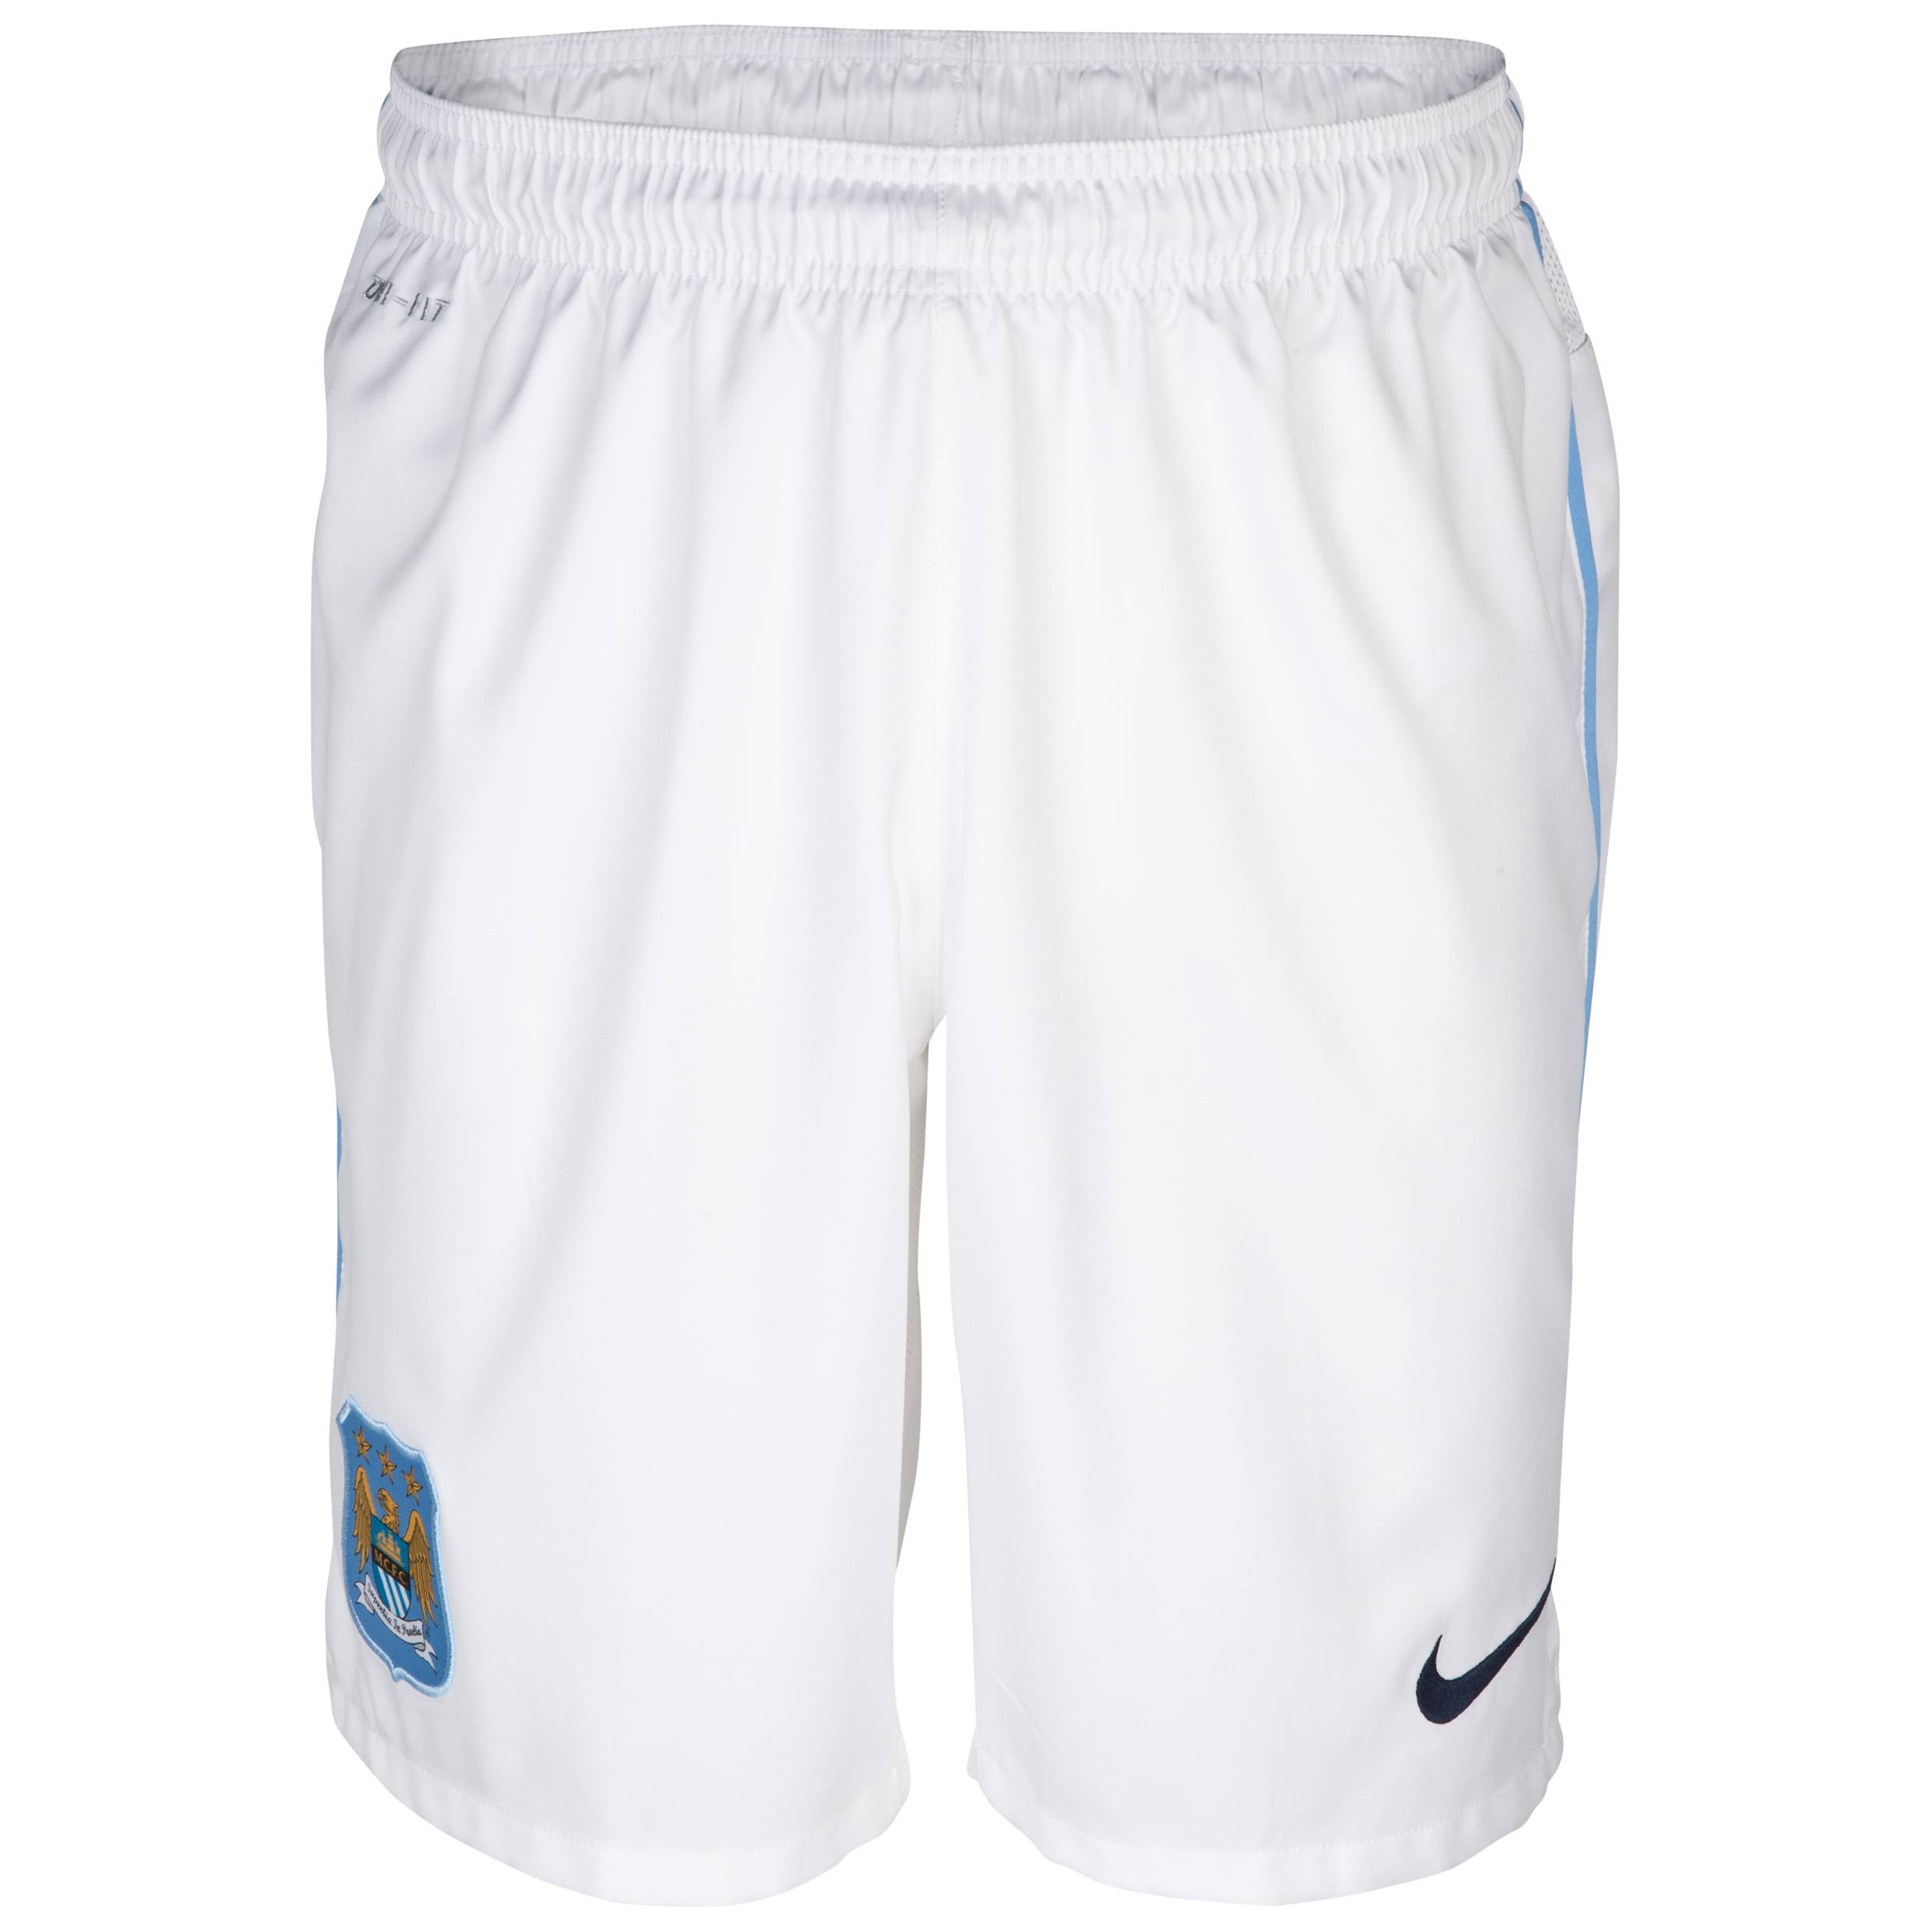 Manchester City Home Shorts 2013/14